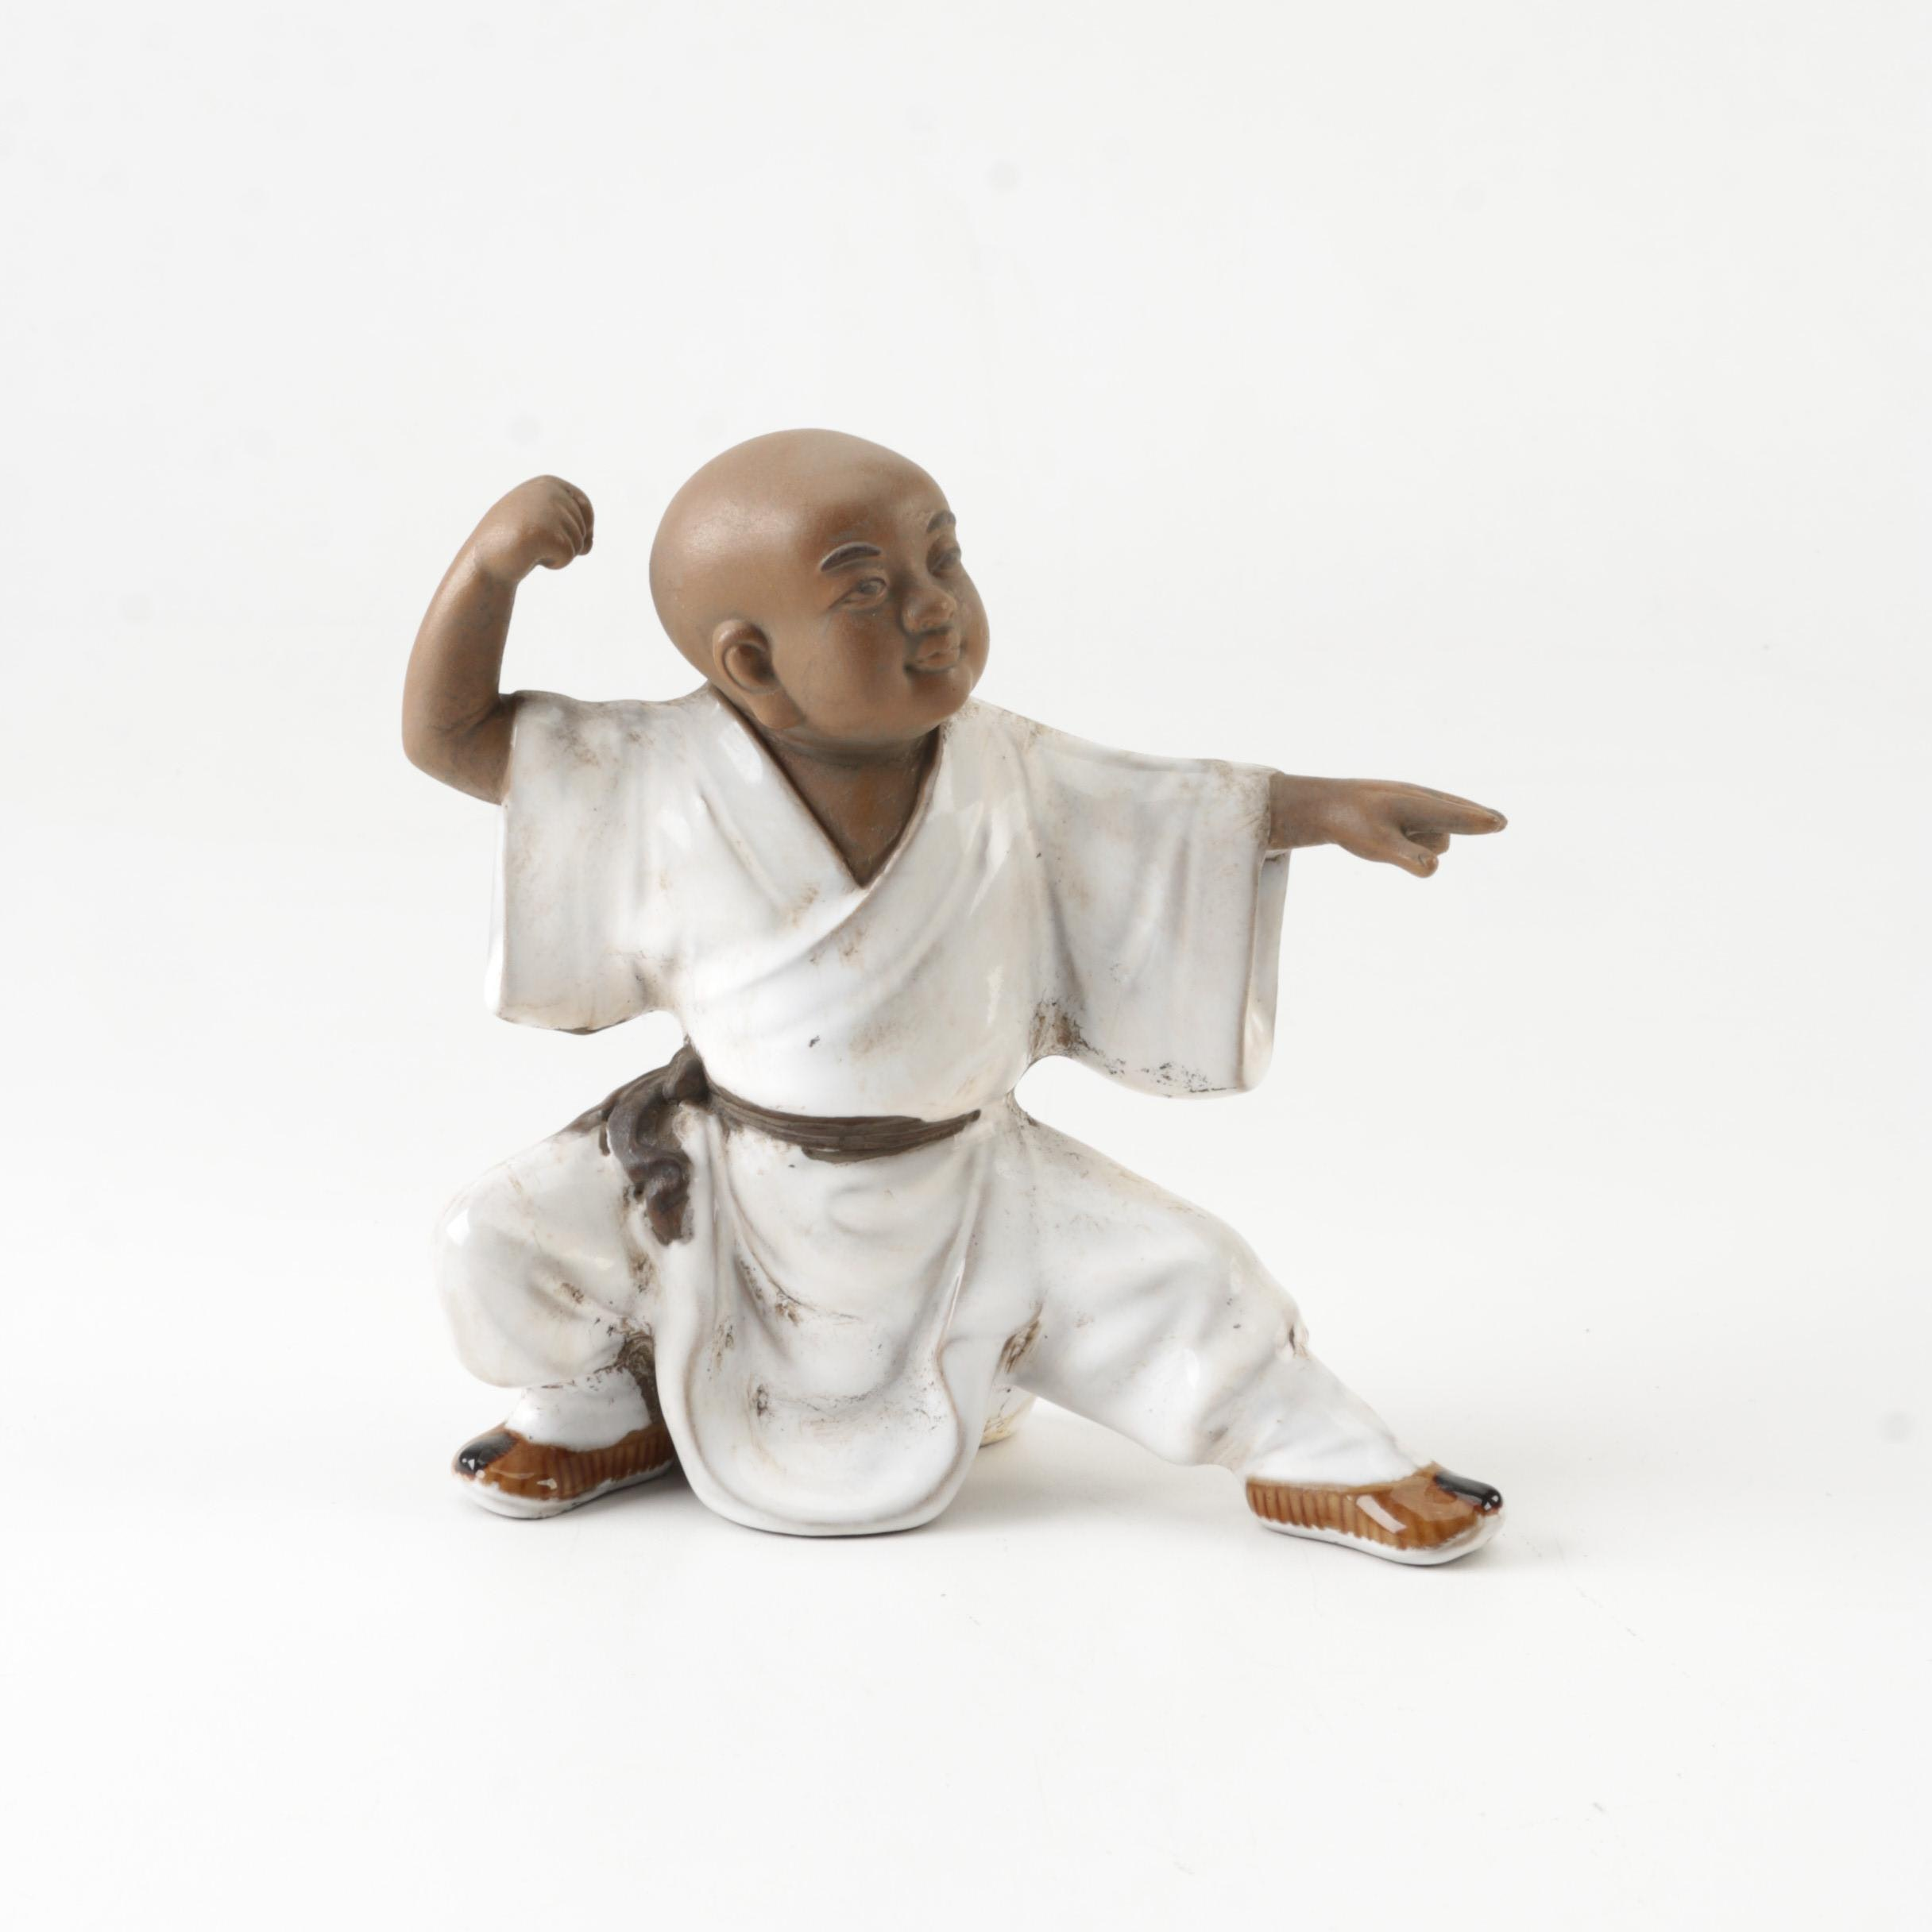 Clay Monk in Martial Arts Stance